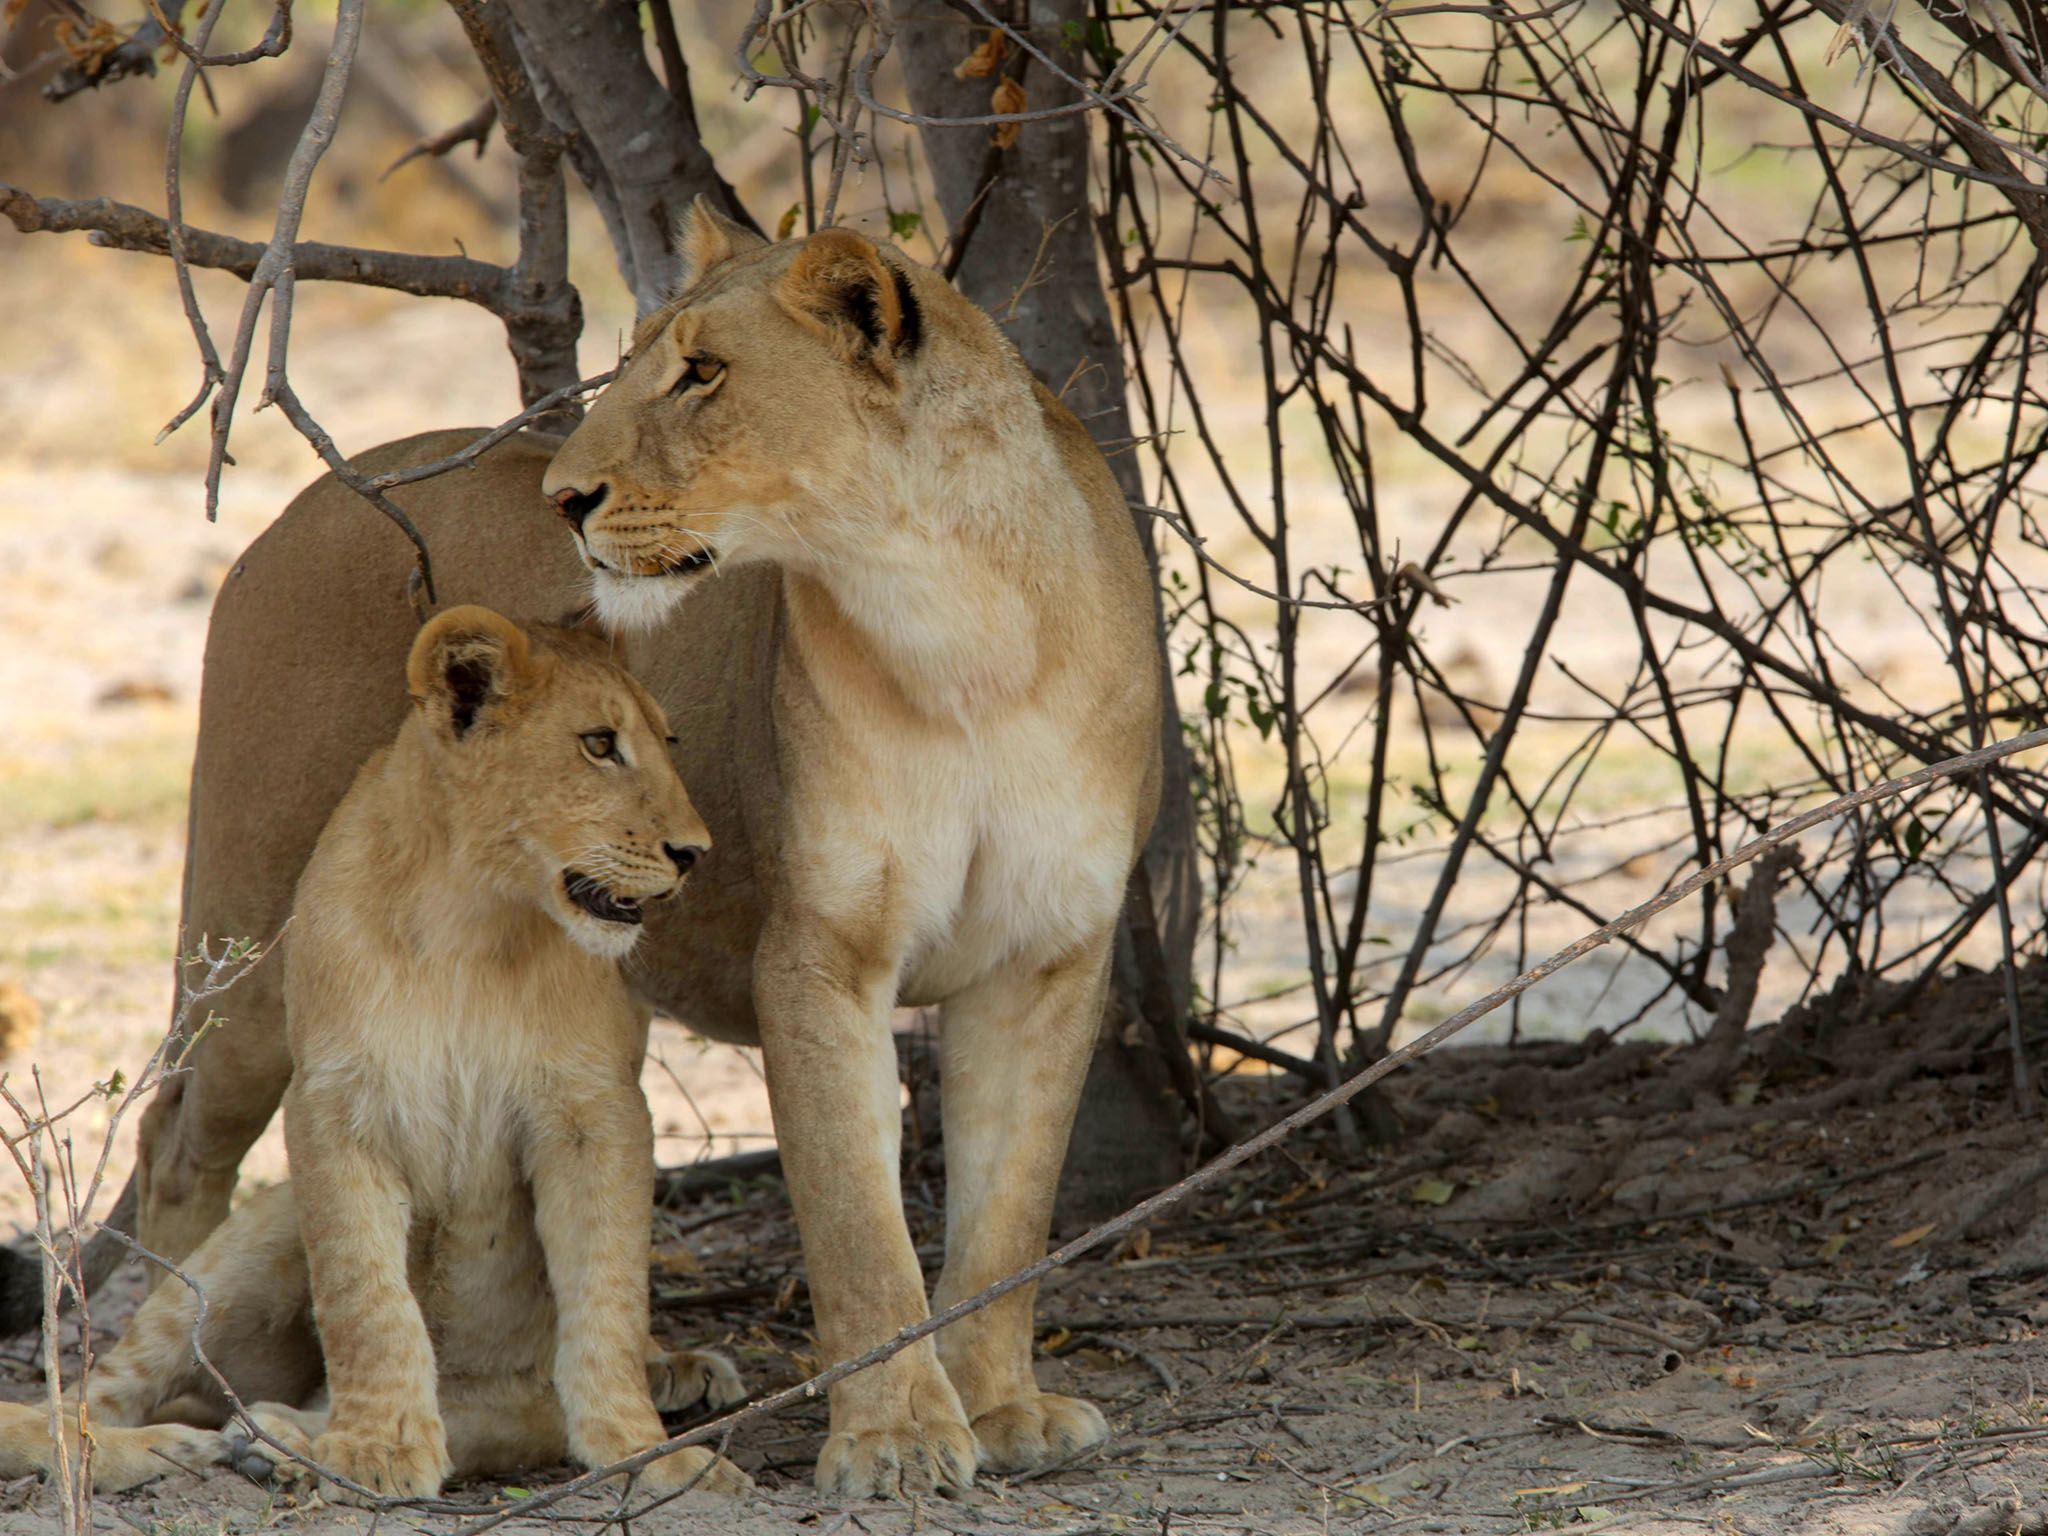 Botswana: Lioness and  cub under brush. This image is from Safari Brothers. [Photo of the day - 九月 2016]